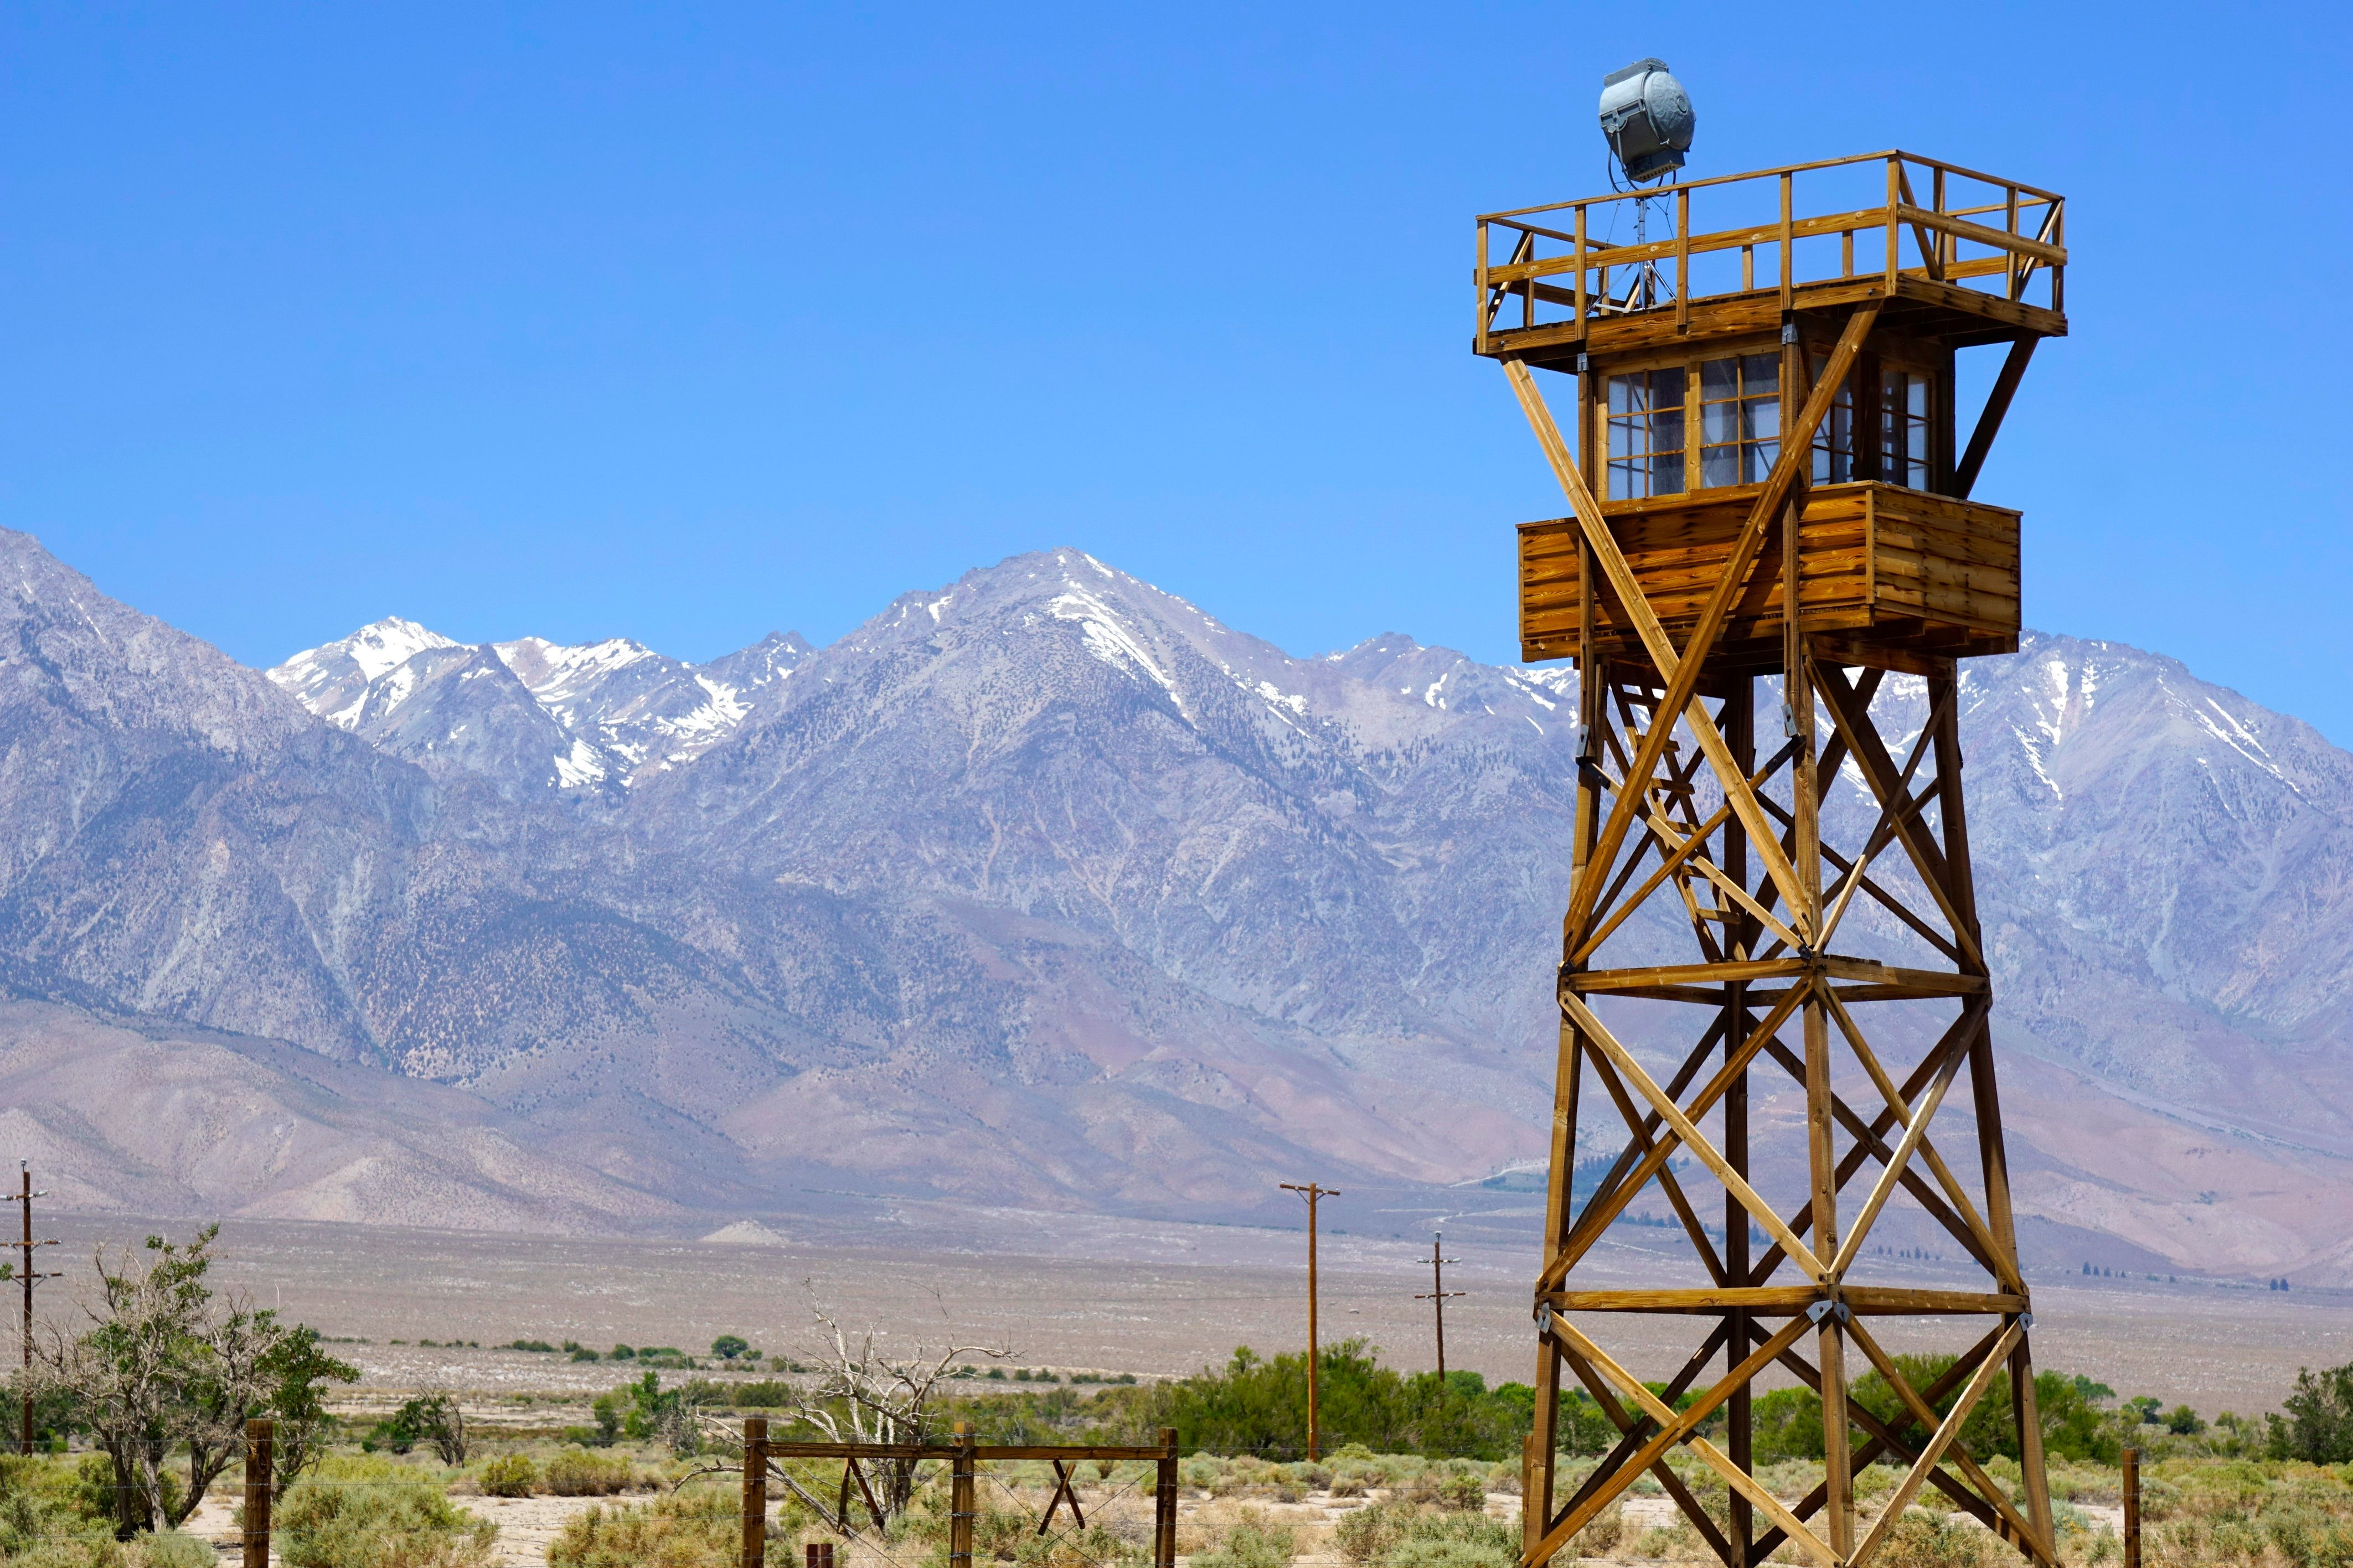 Guard tower at the Manzanar National Historic Site in California. Manzanar was a relocation center where the US government under  President Franklin D Roosevelt ordered the incarceration of over 110,000 Japanese-Americans during World War II.